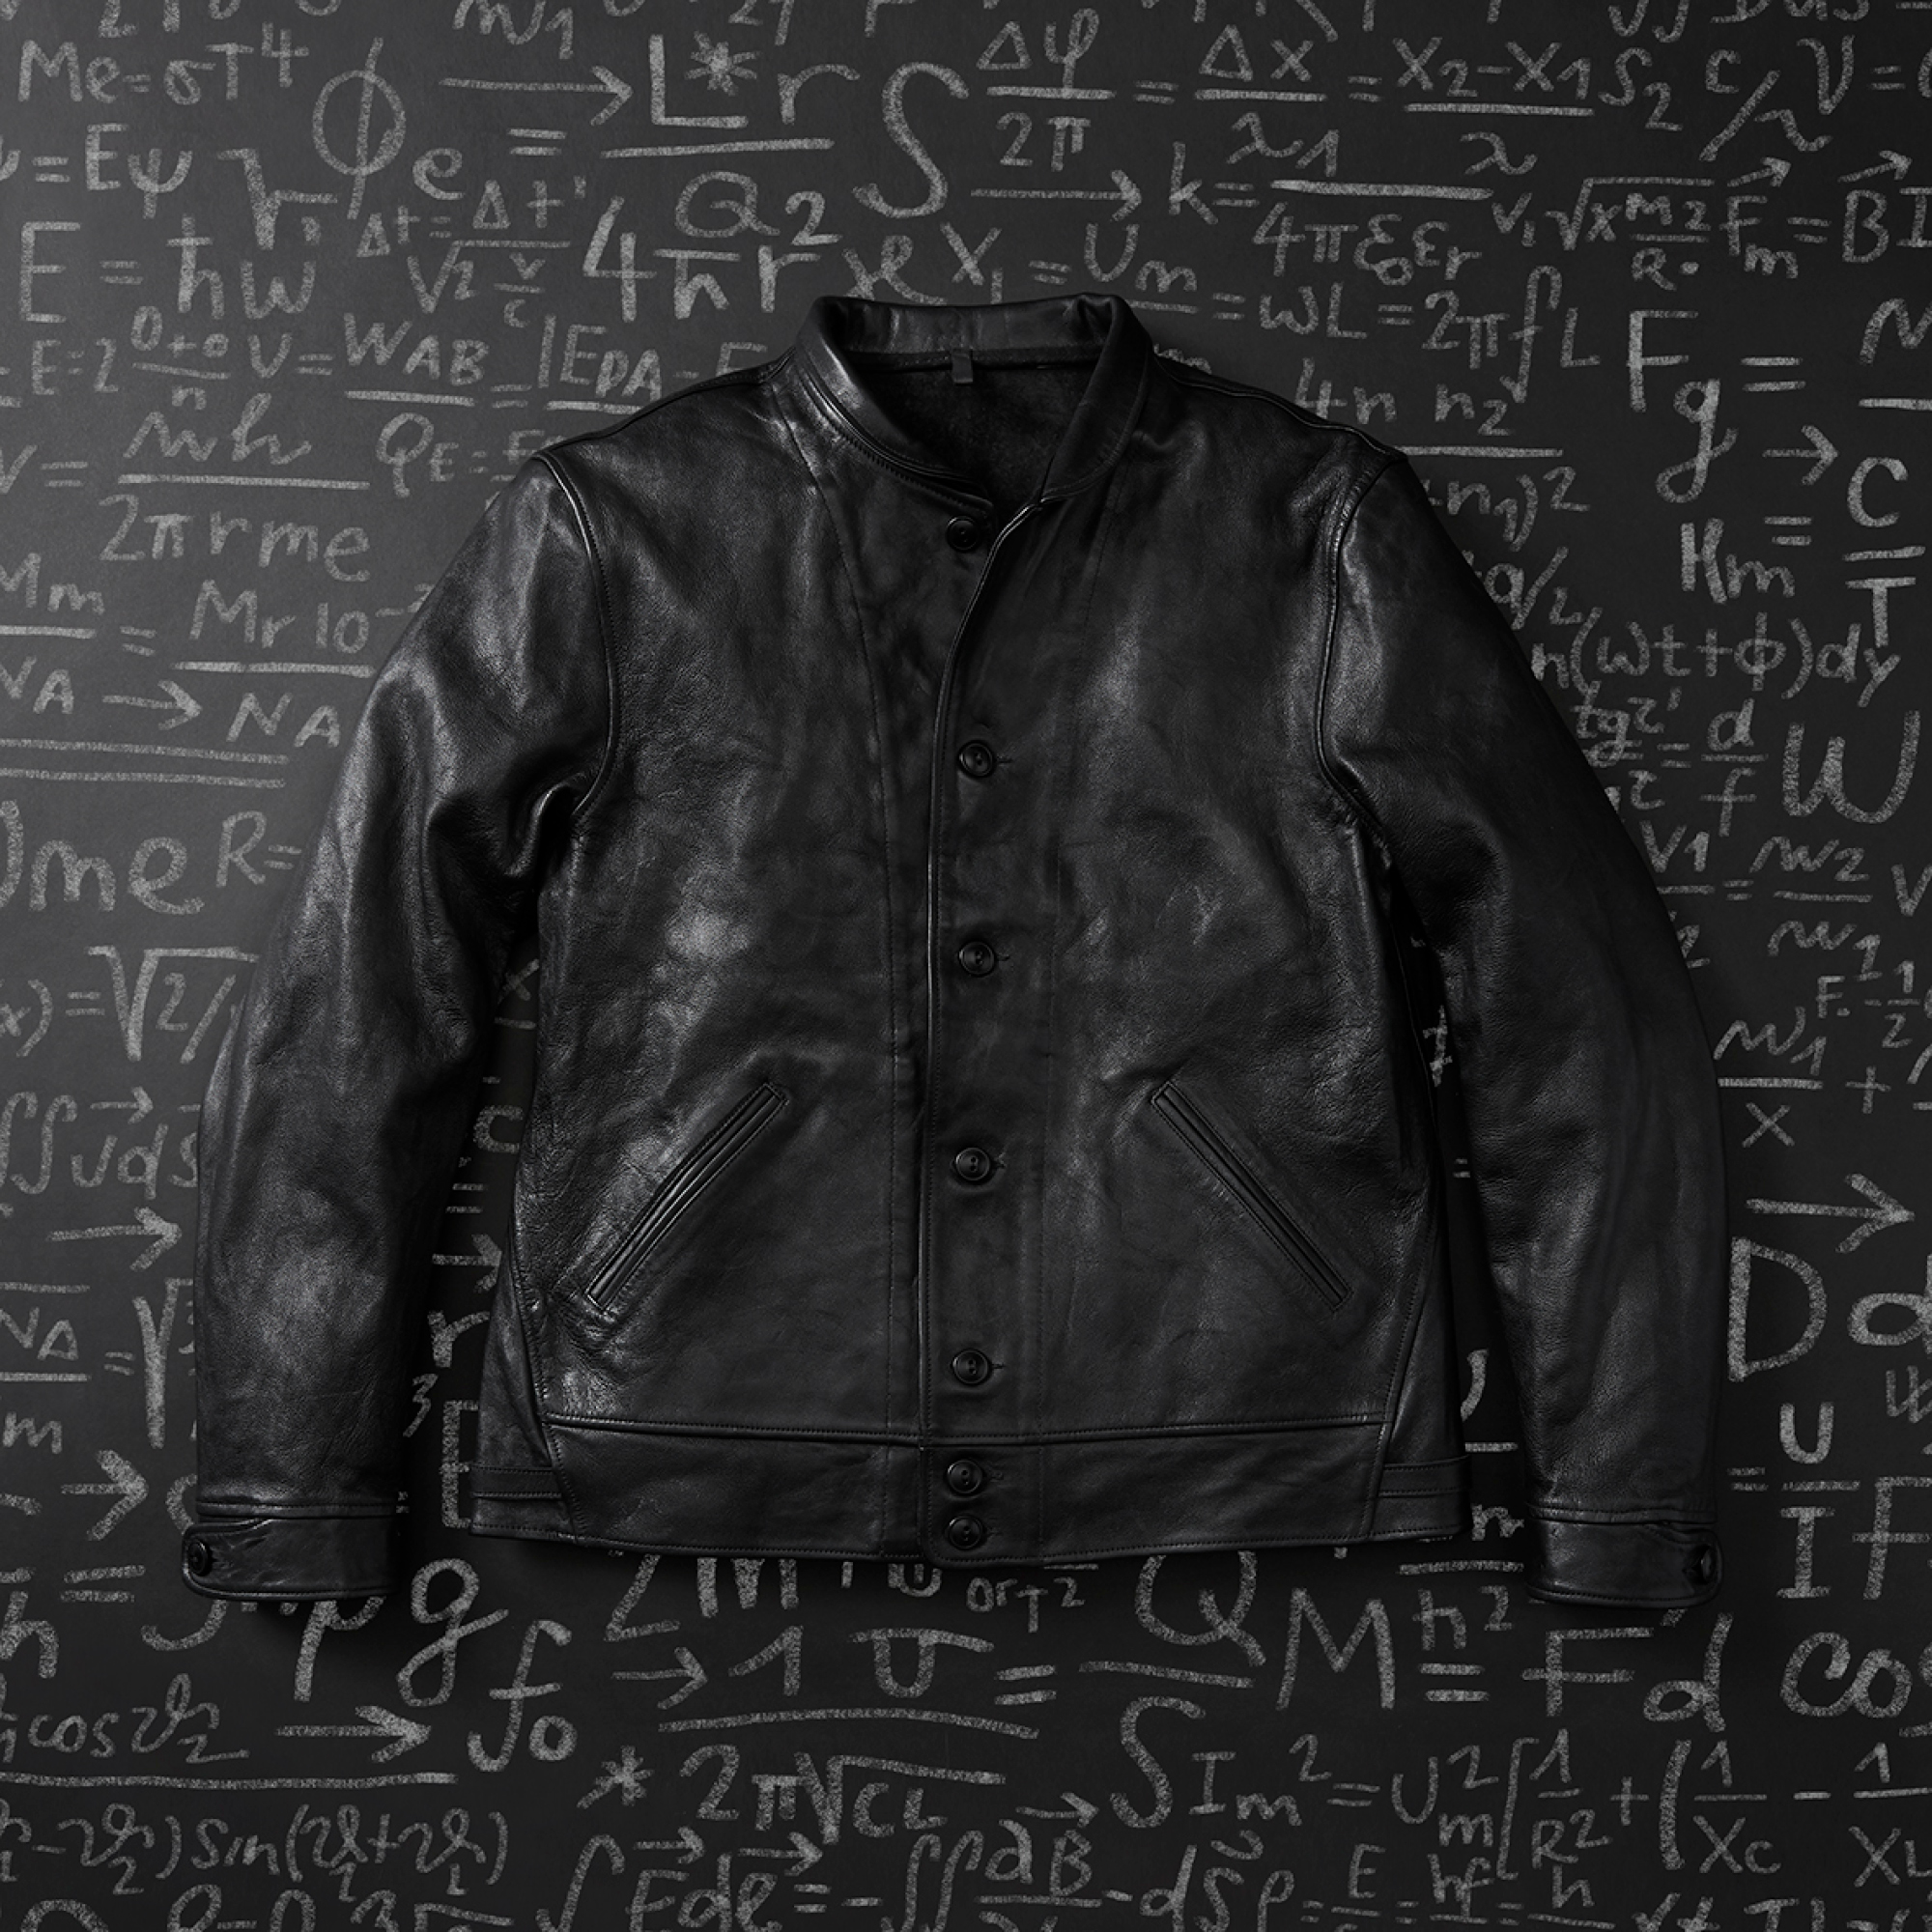 Replica of Albert Einstein's Classic Menlo Cossack Leather Jacket